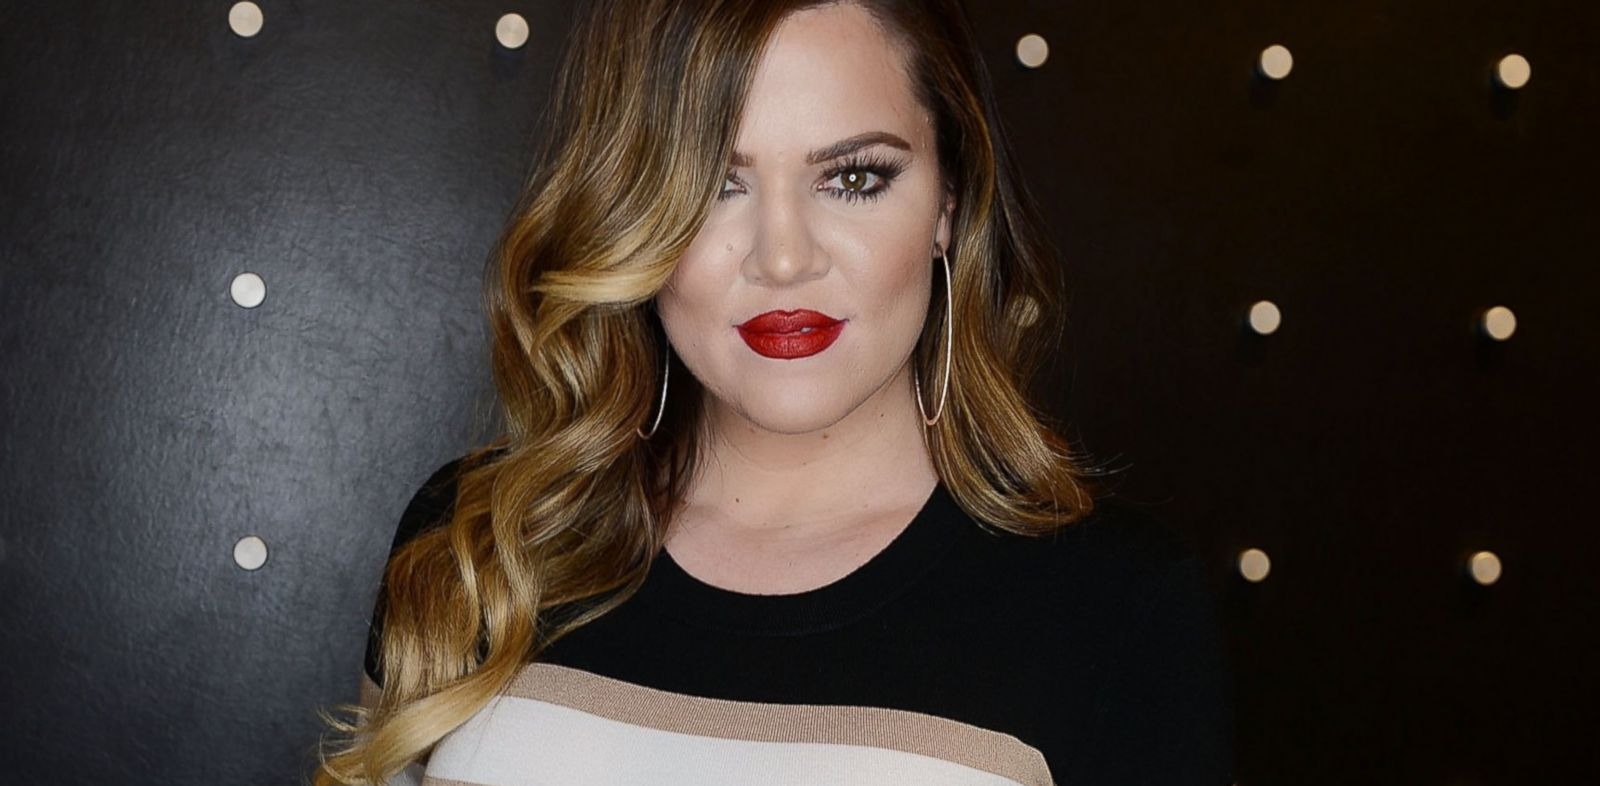 PHOTO: Khloe Kardashian poses for a photo at Kardashian Khaos in the Mirage Hotel and Casino, Jan. 25, 2014 in Las Vegas.